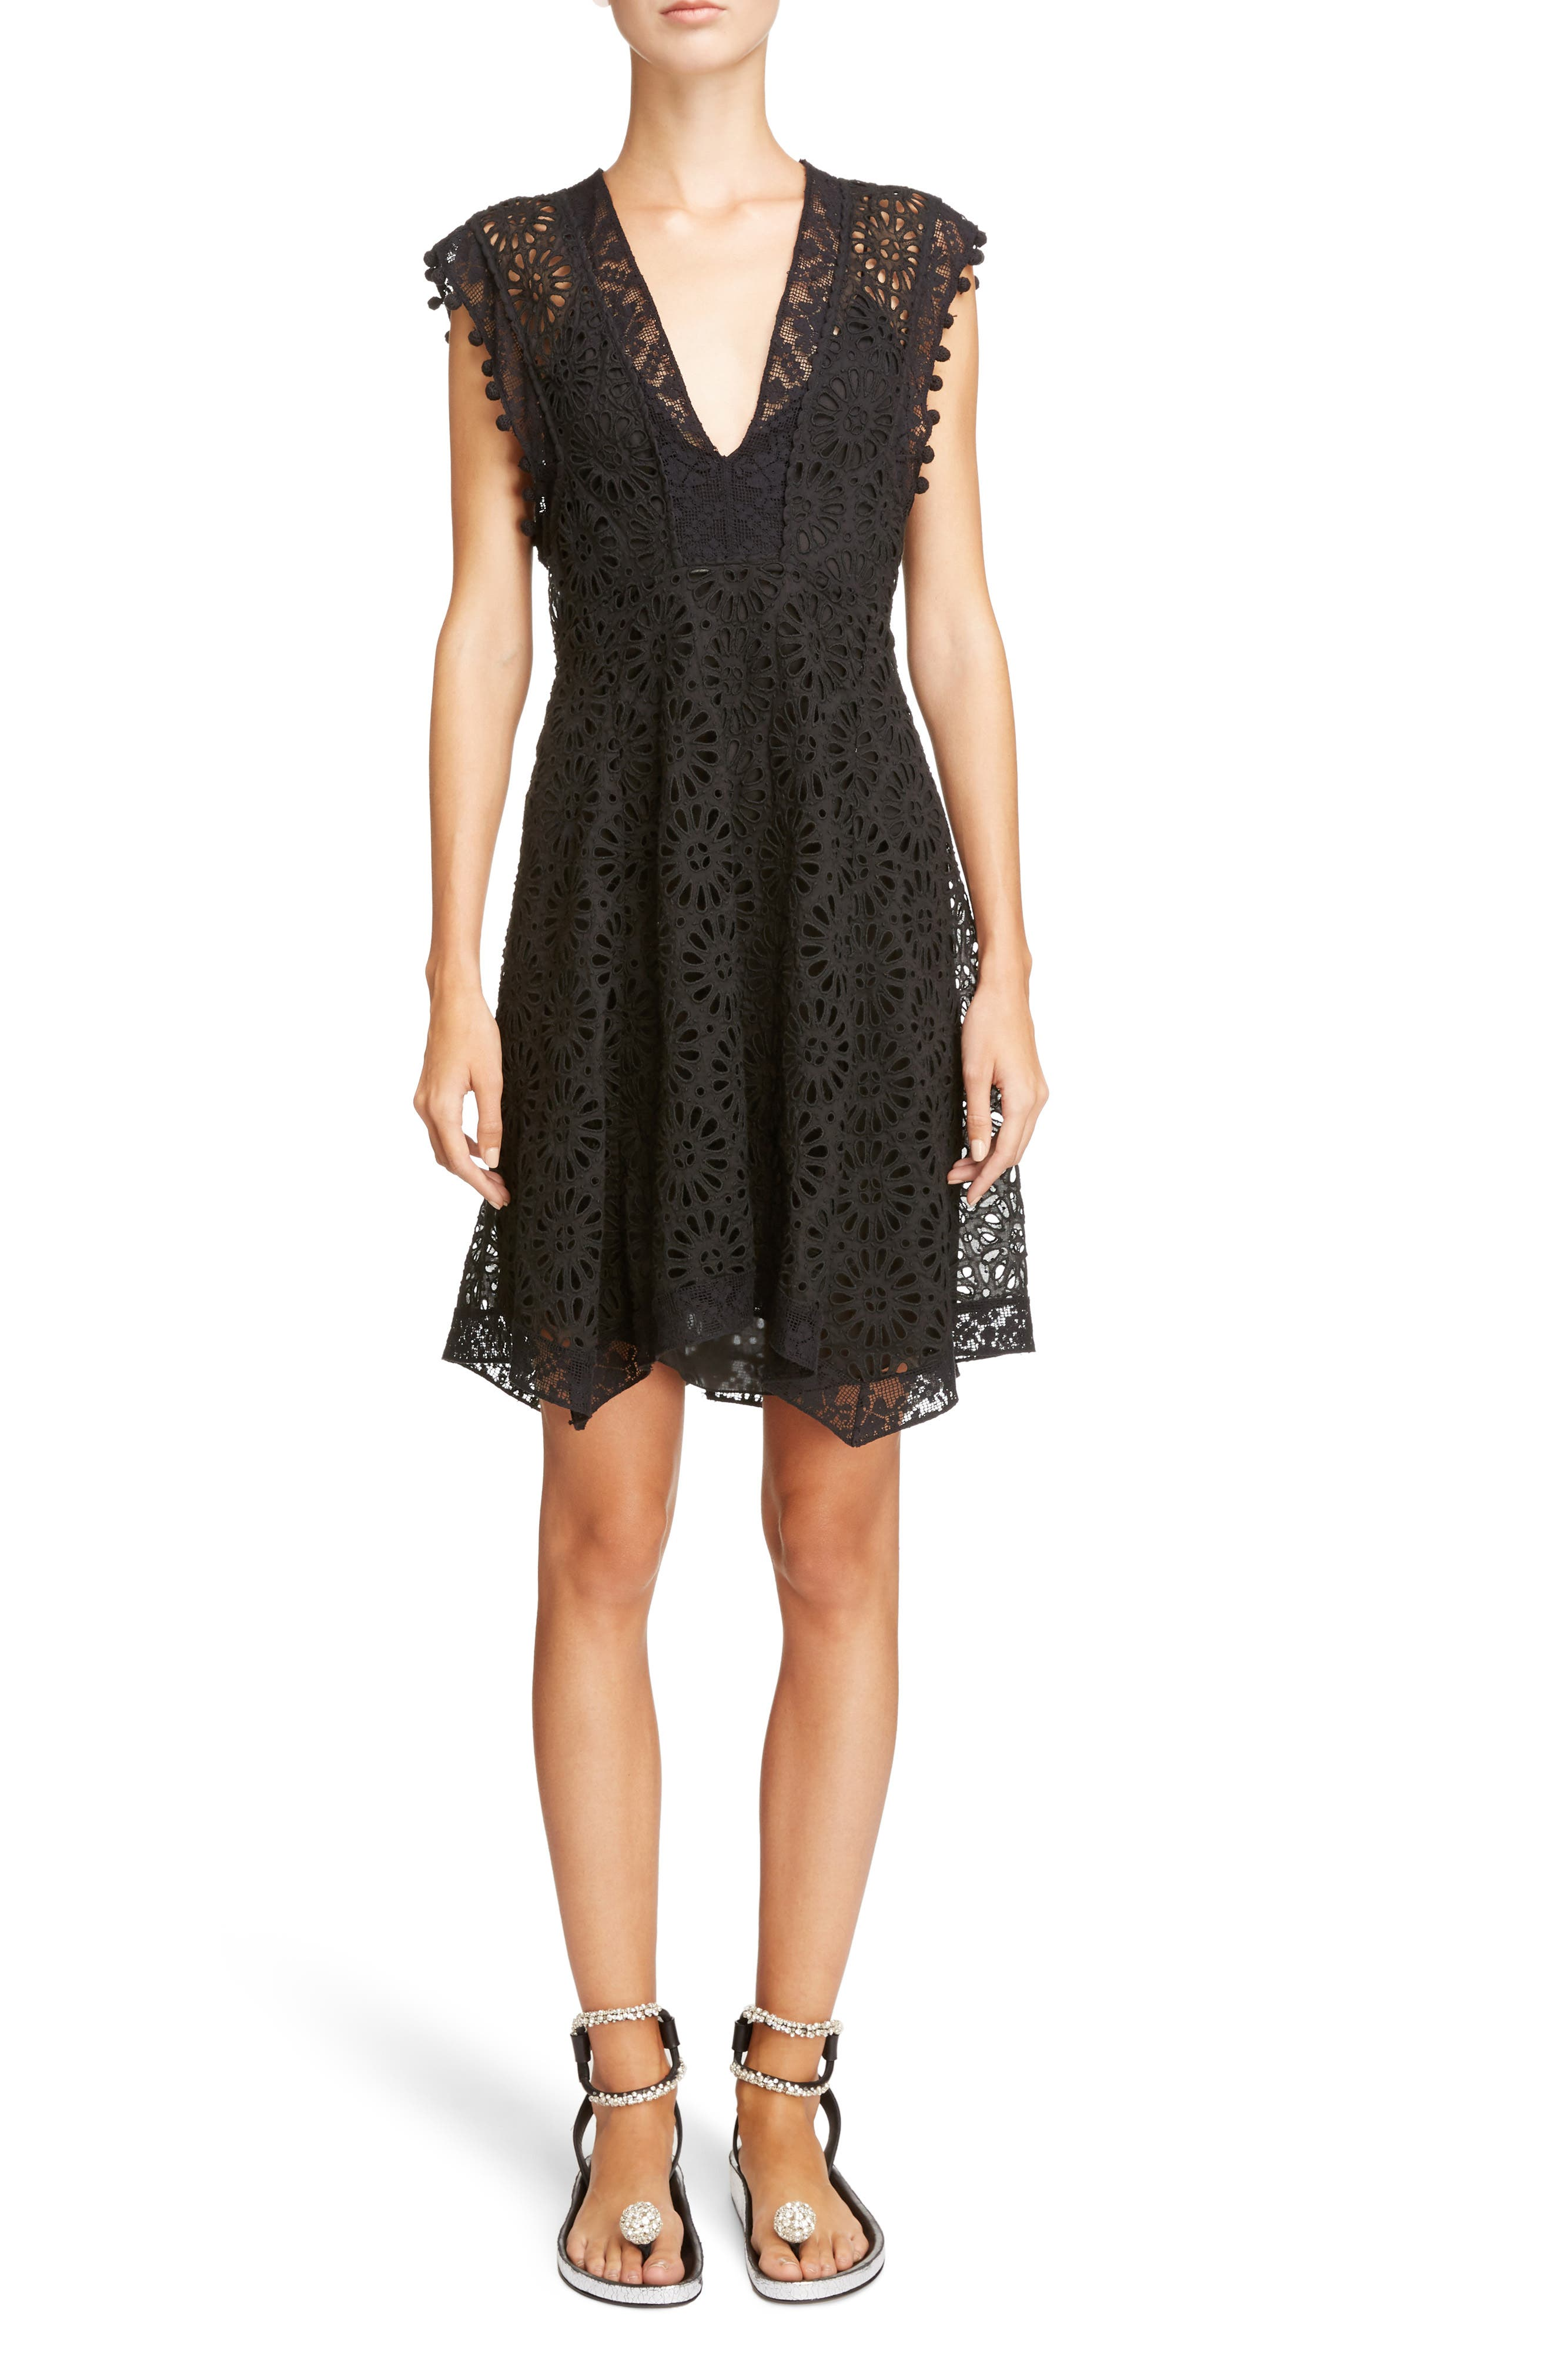 Isabel Marant Pompom Trim Broderie Anglaise Dress